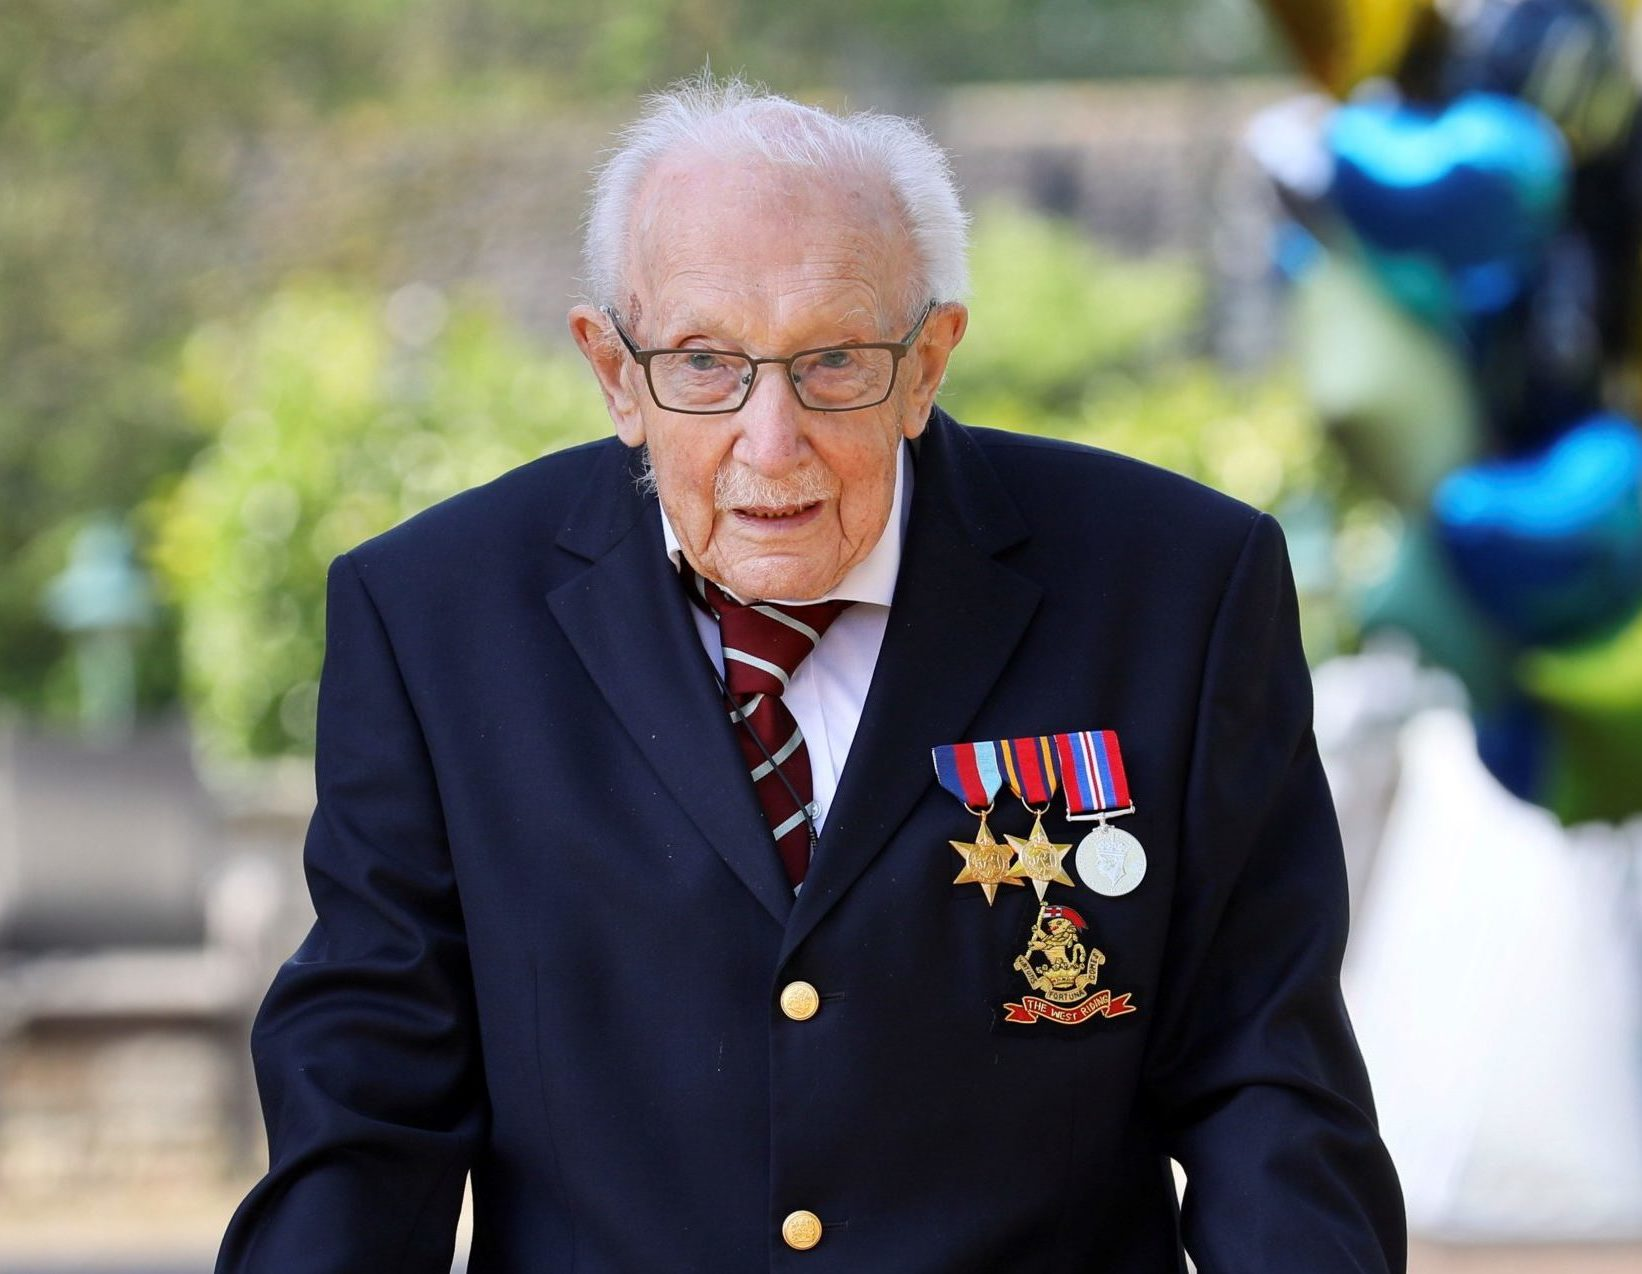 Captain Tom Moore 'to receive personalised telegram from the Queen' on 100th birthday